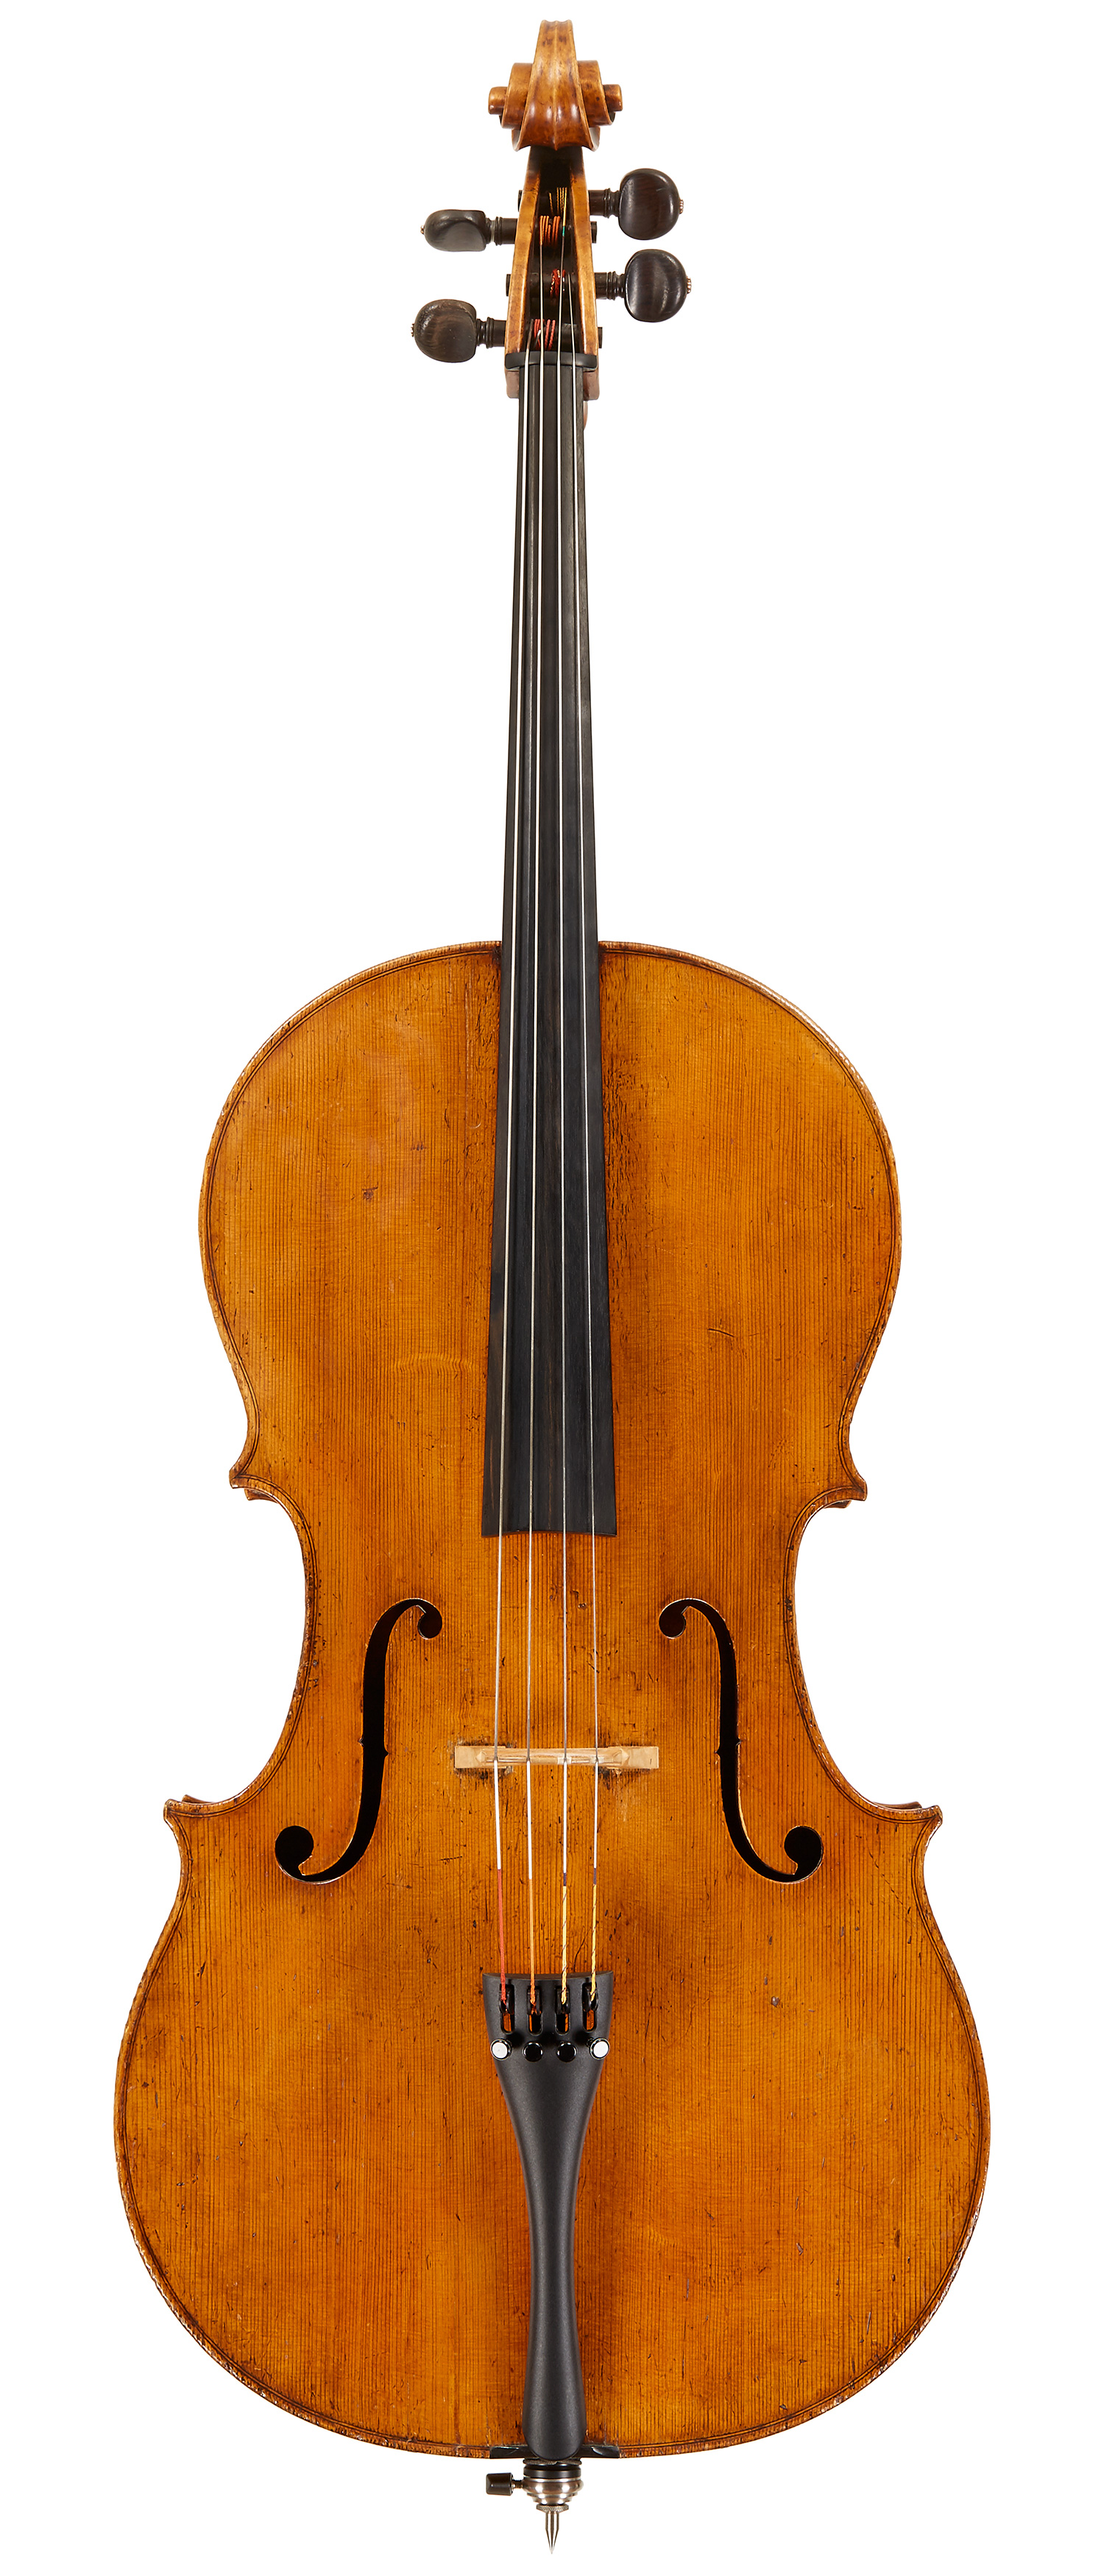 Santo Serafin Cello Top